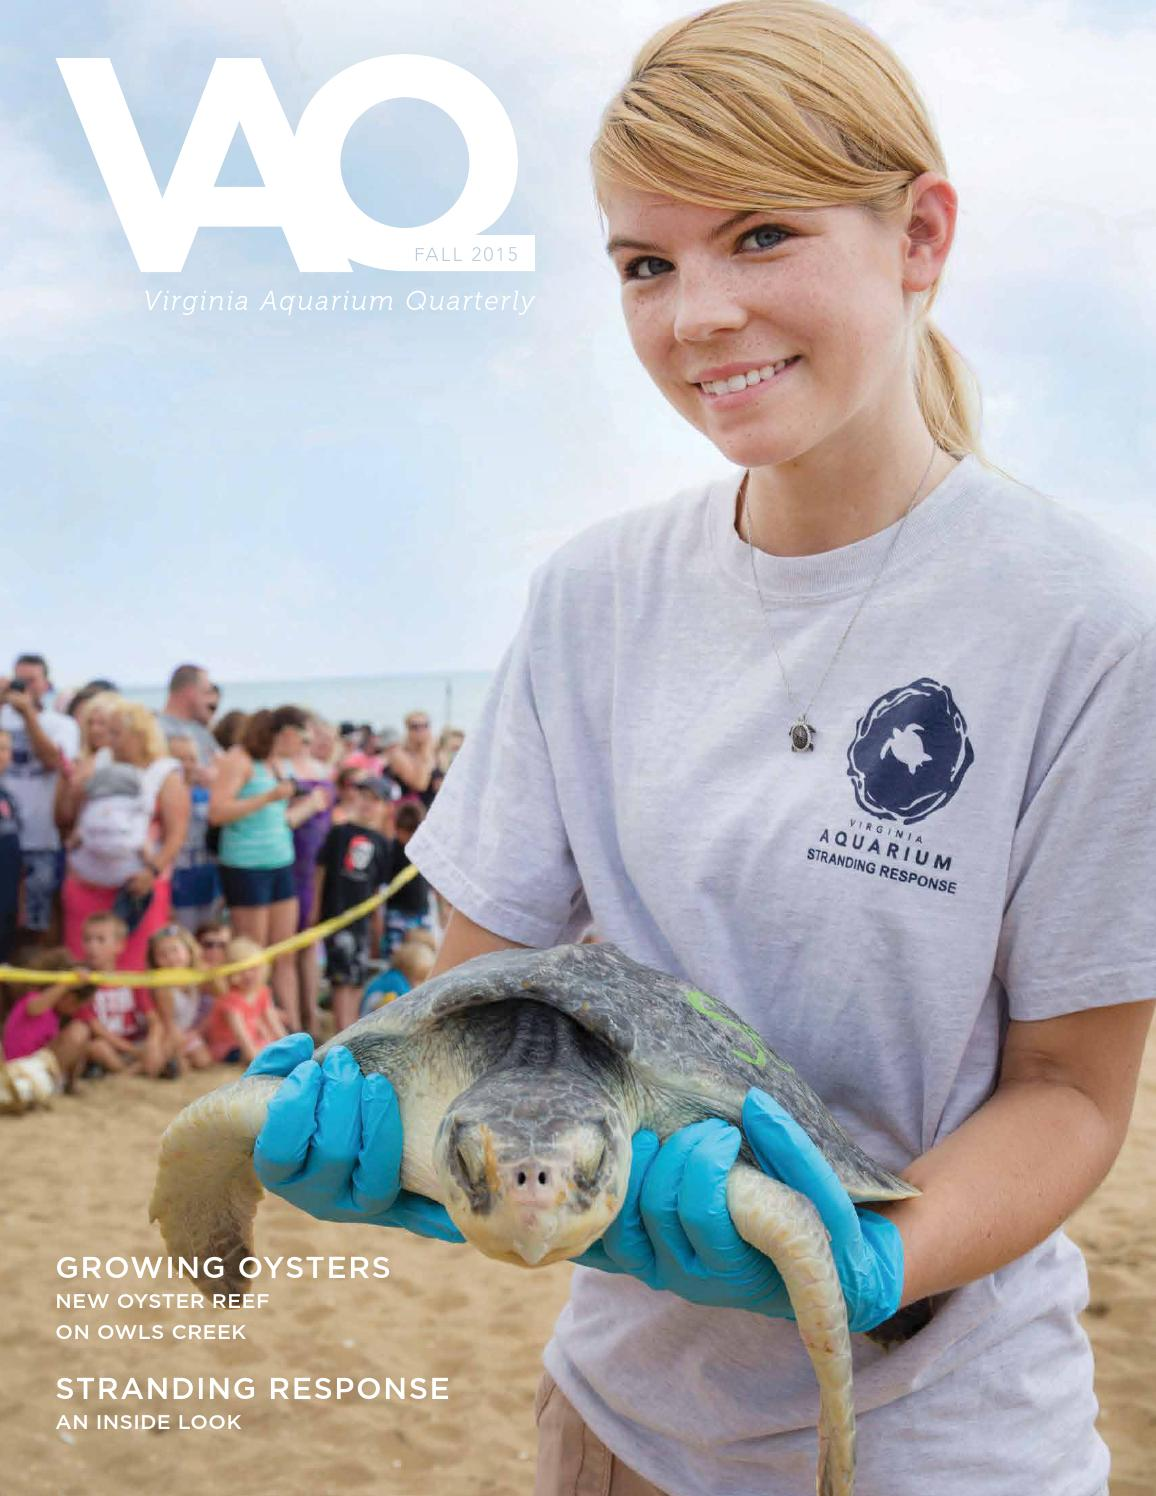 Fall 2015 vaq by virginia aquarium issuu for Fish store virginia beach